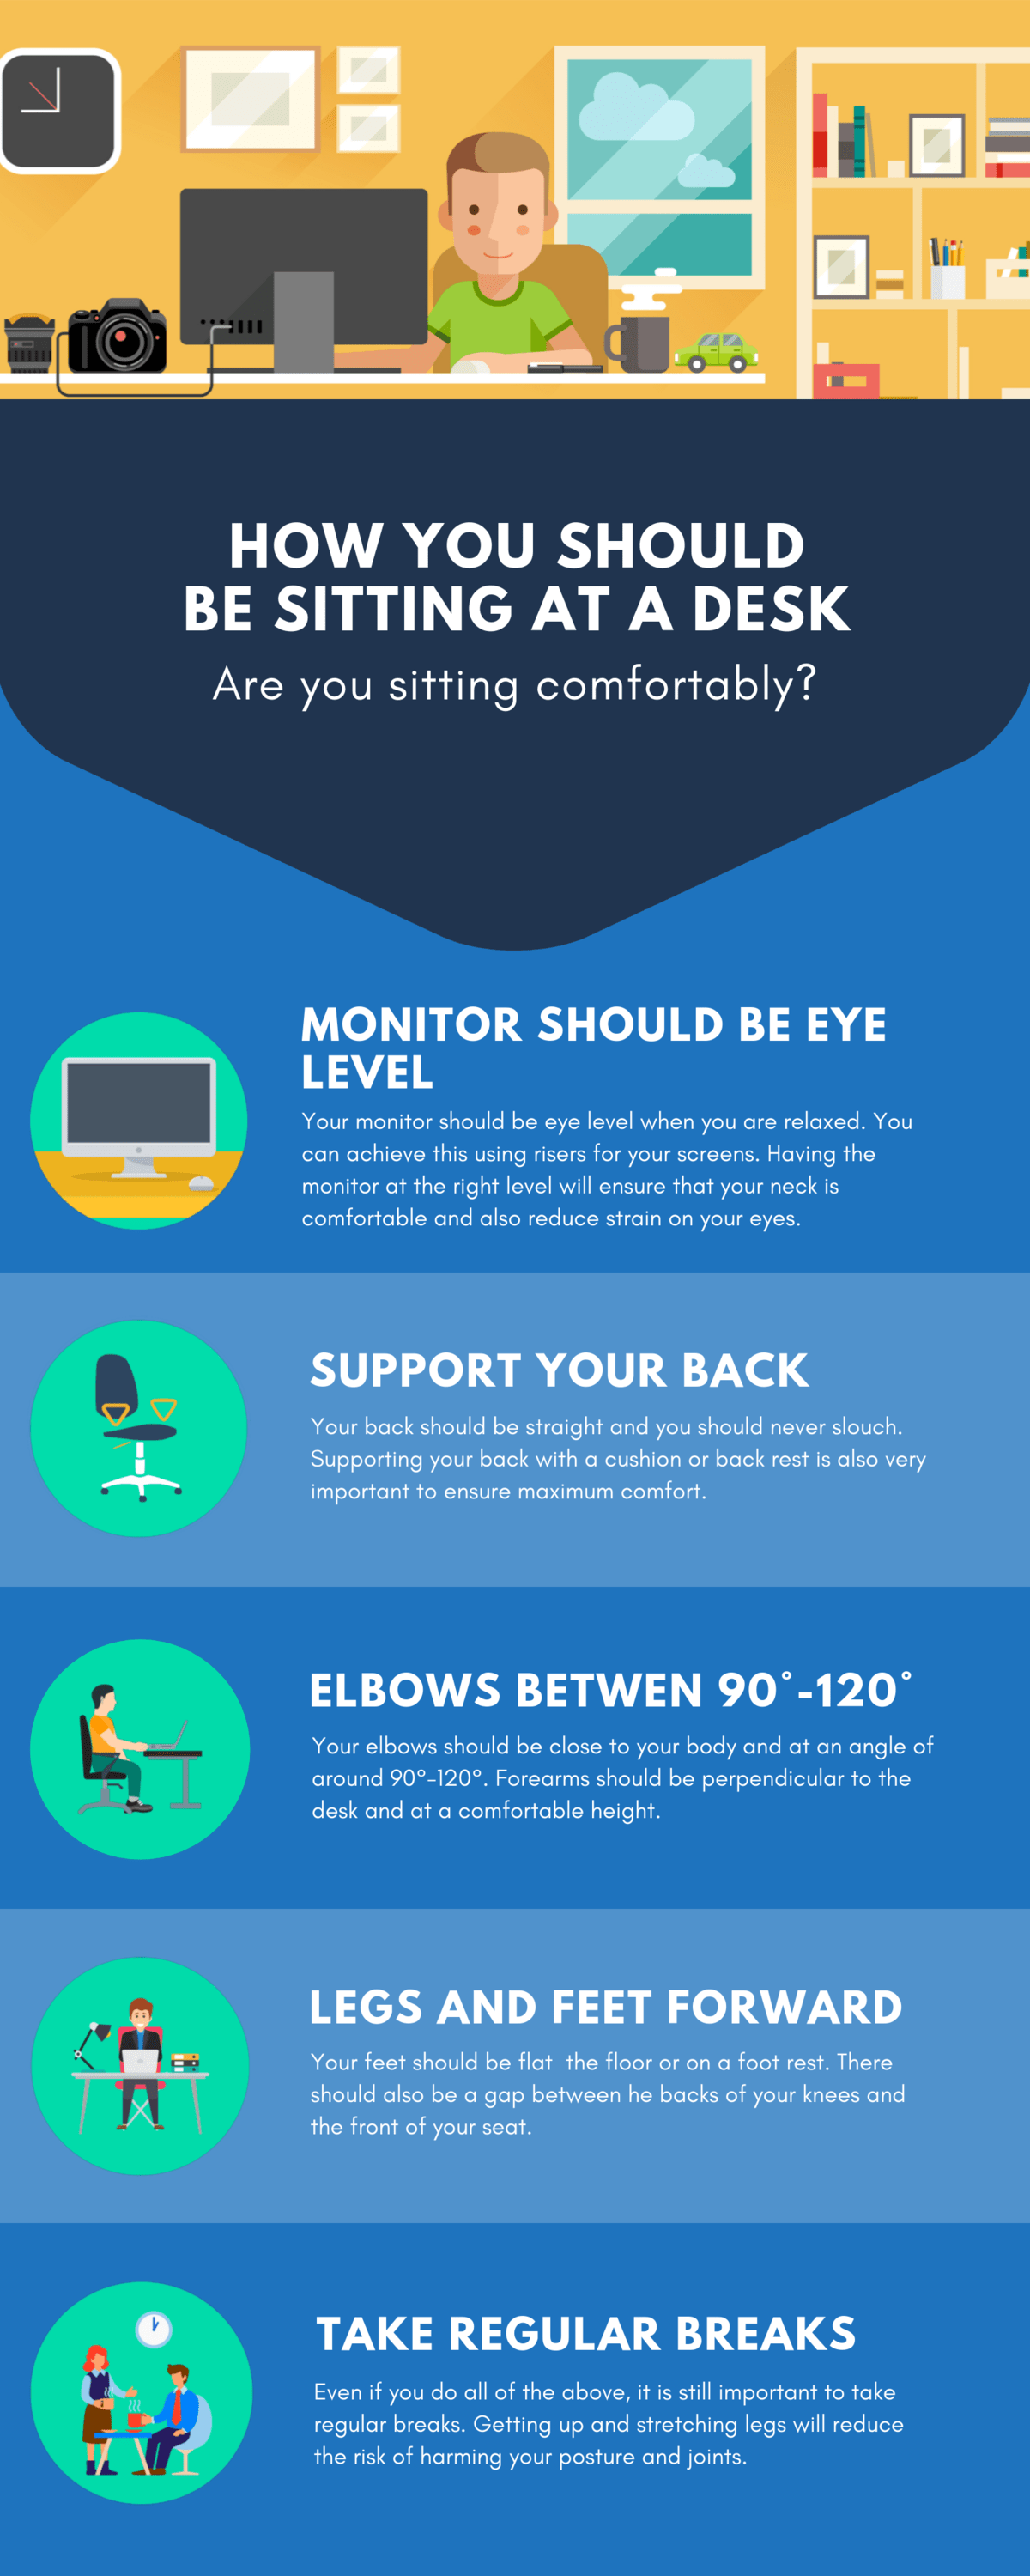 How you should be sitting at a desk